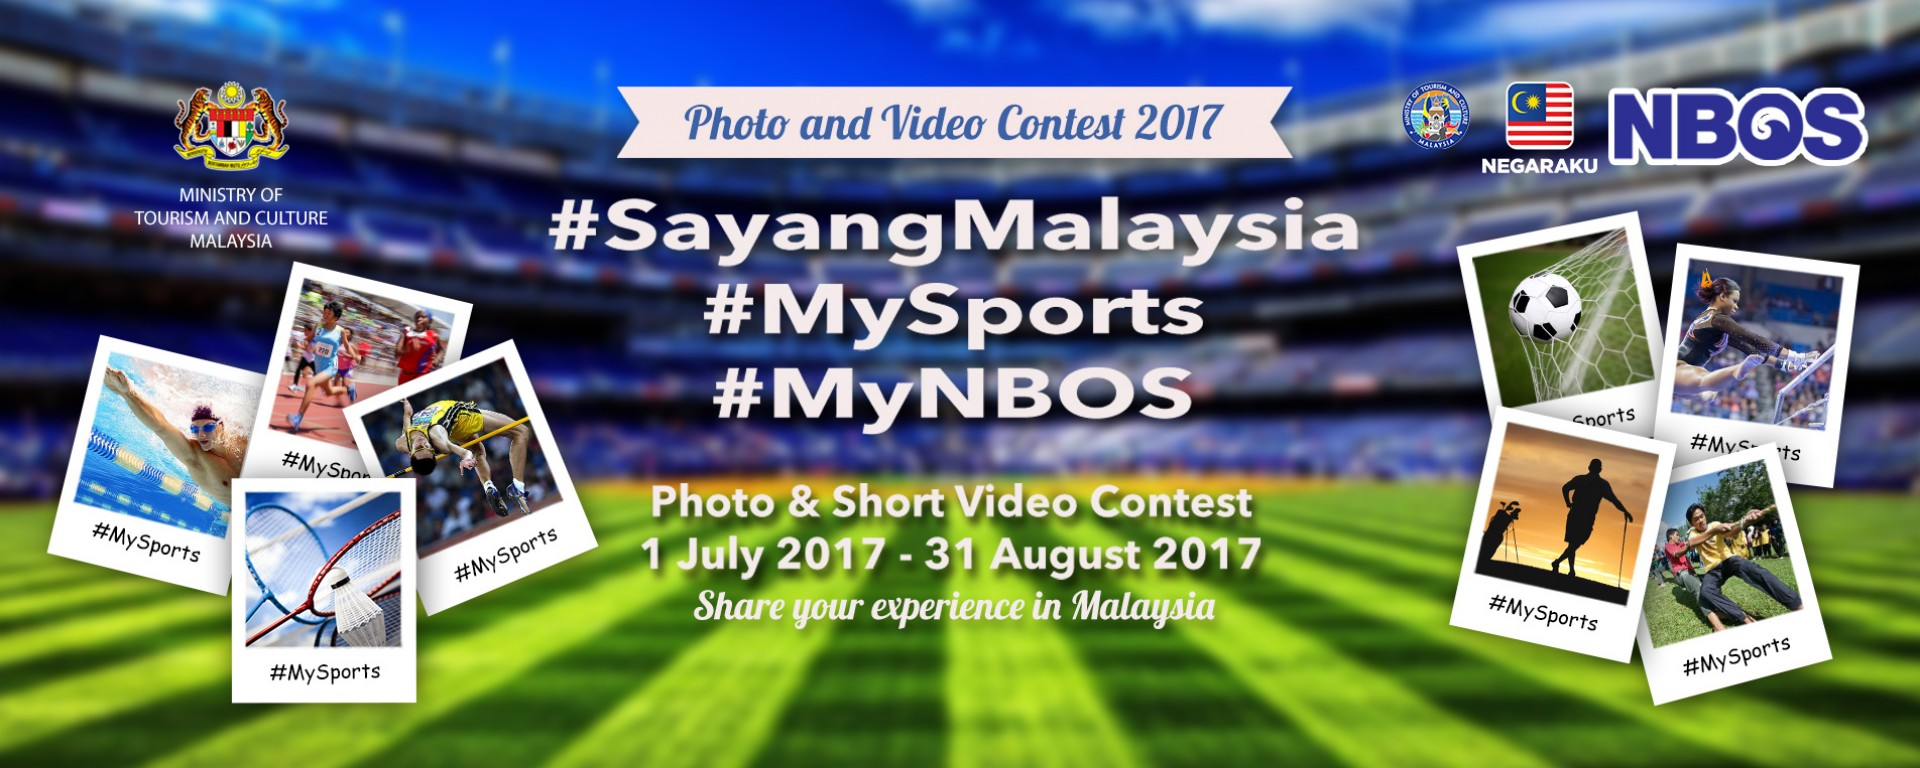 Photo &amp; Video Contest NBOS 2017 <div class='action'><a href='http://www.motac.gov.my/sayangmalaysia' class='btn btn-danger btn-lg' target='_blank'>Learn More</a></div>